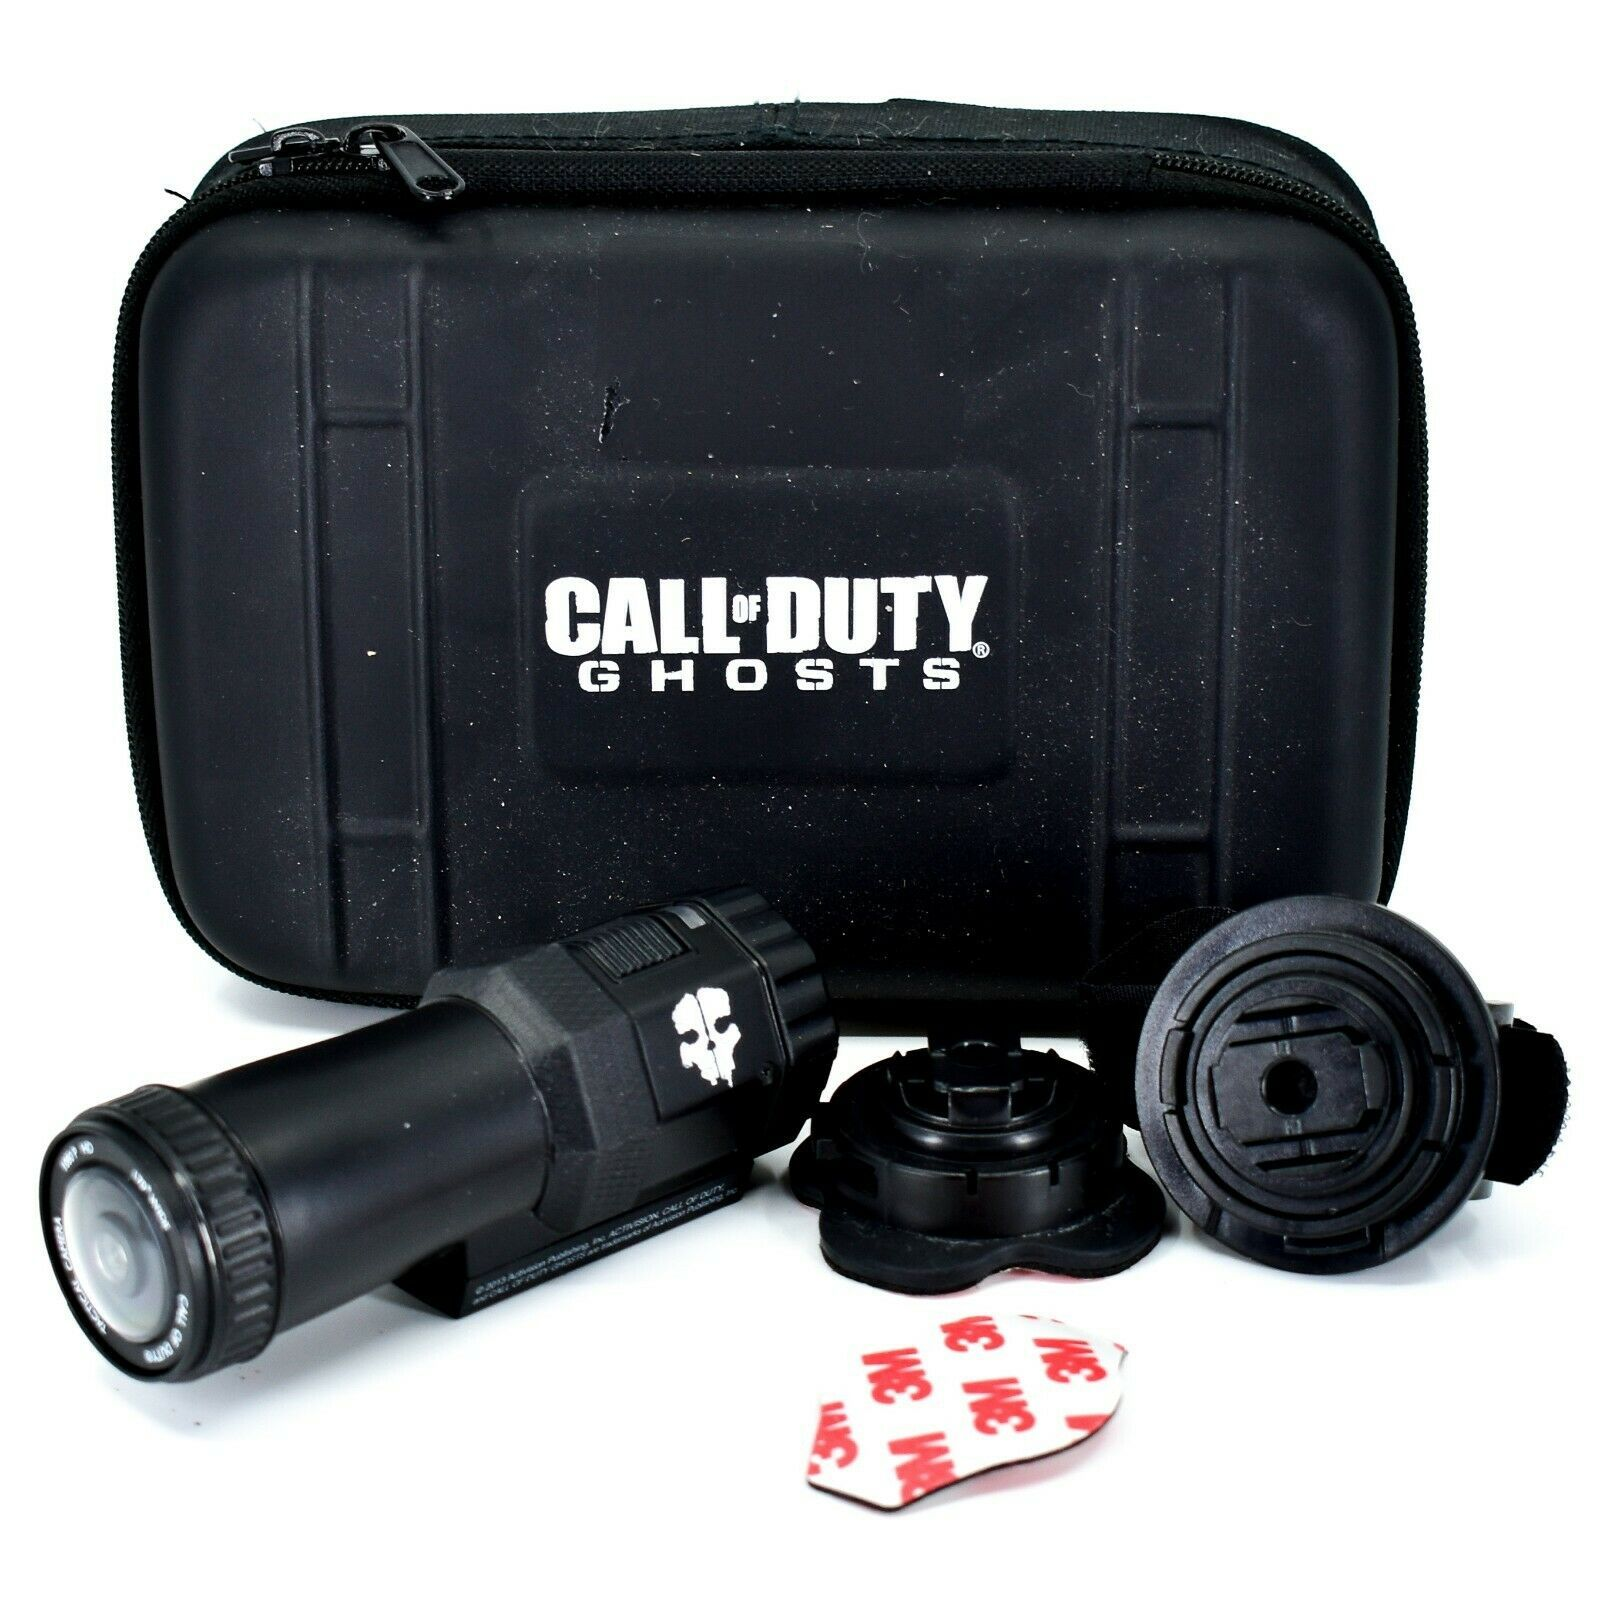 Call of Duty Ghosts 1080p HD Tactical Camera with Case & Accessories